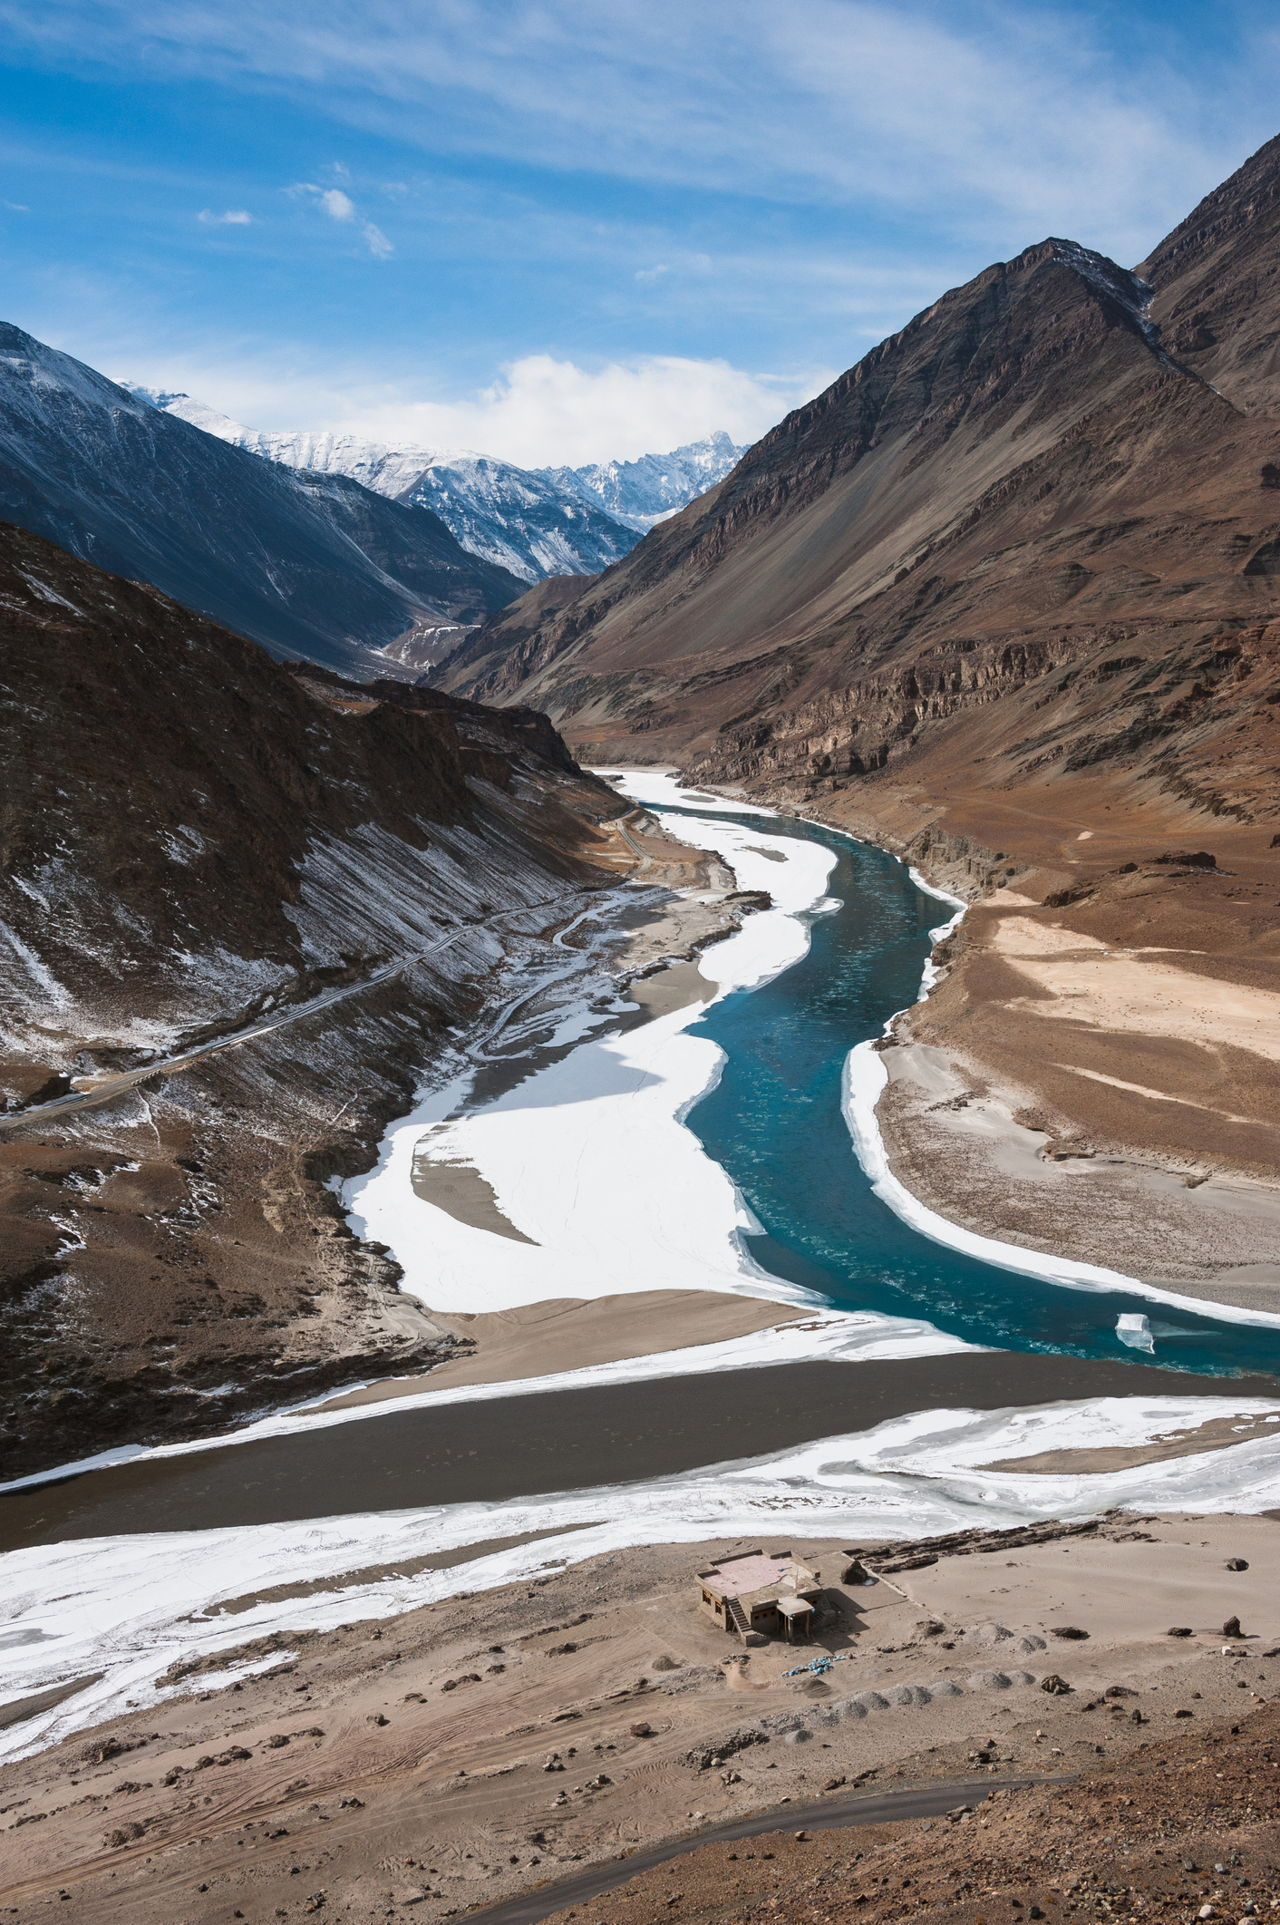 The Indus river near Leh, Ladakh